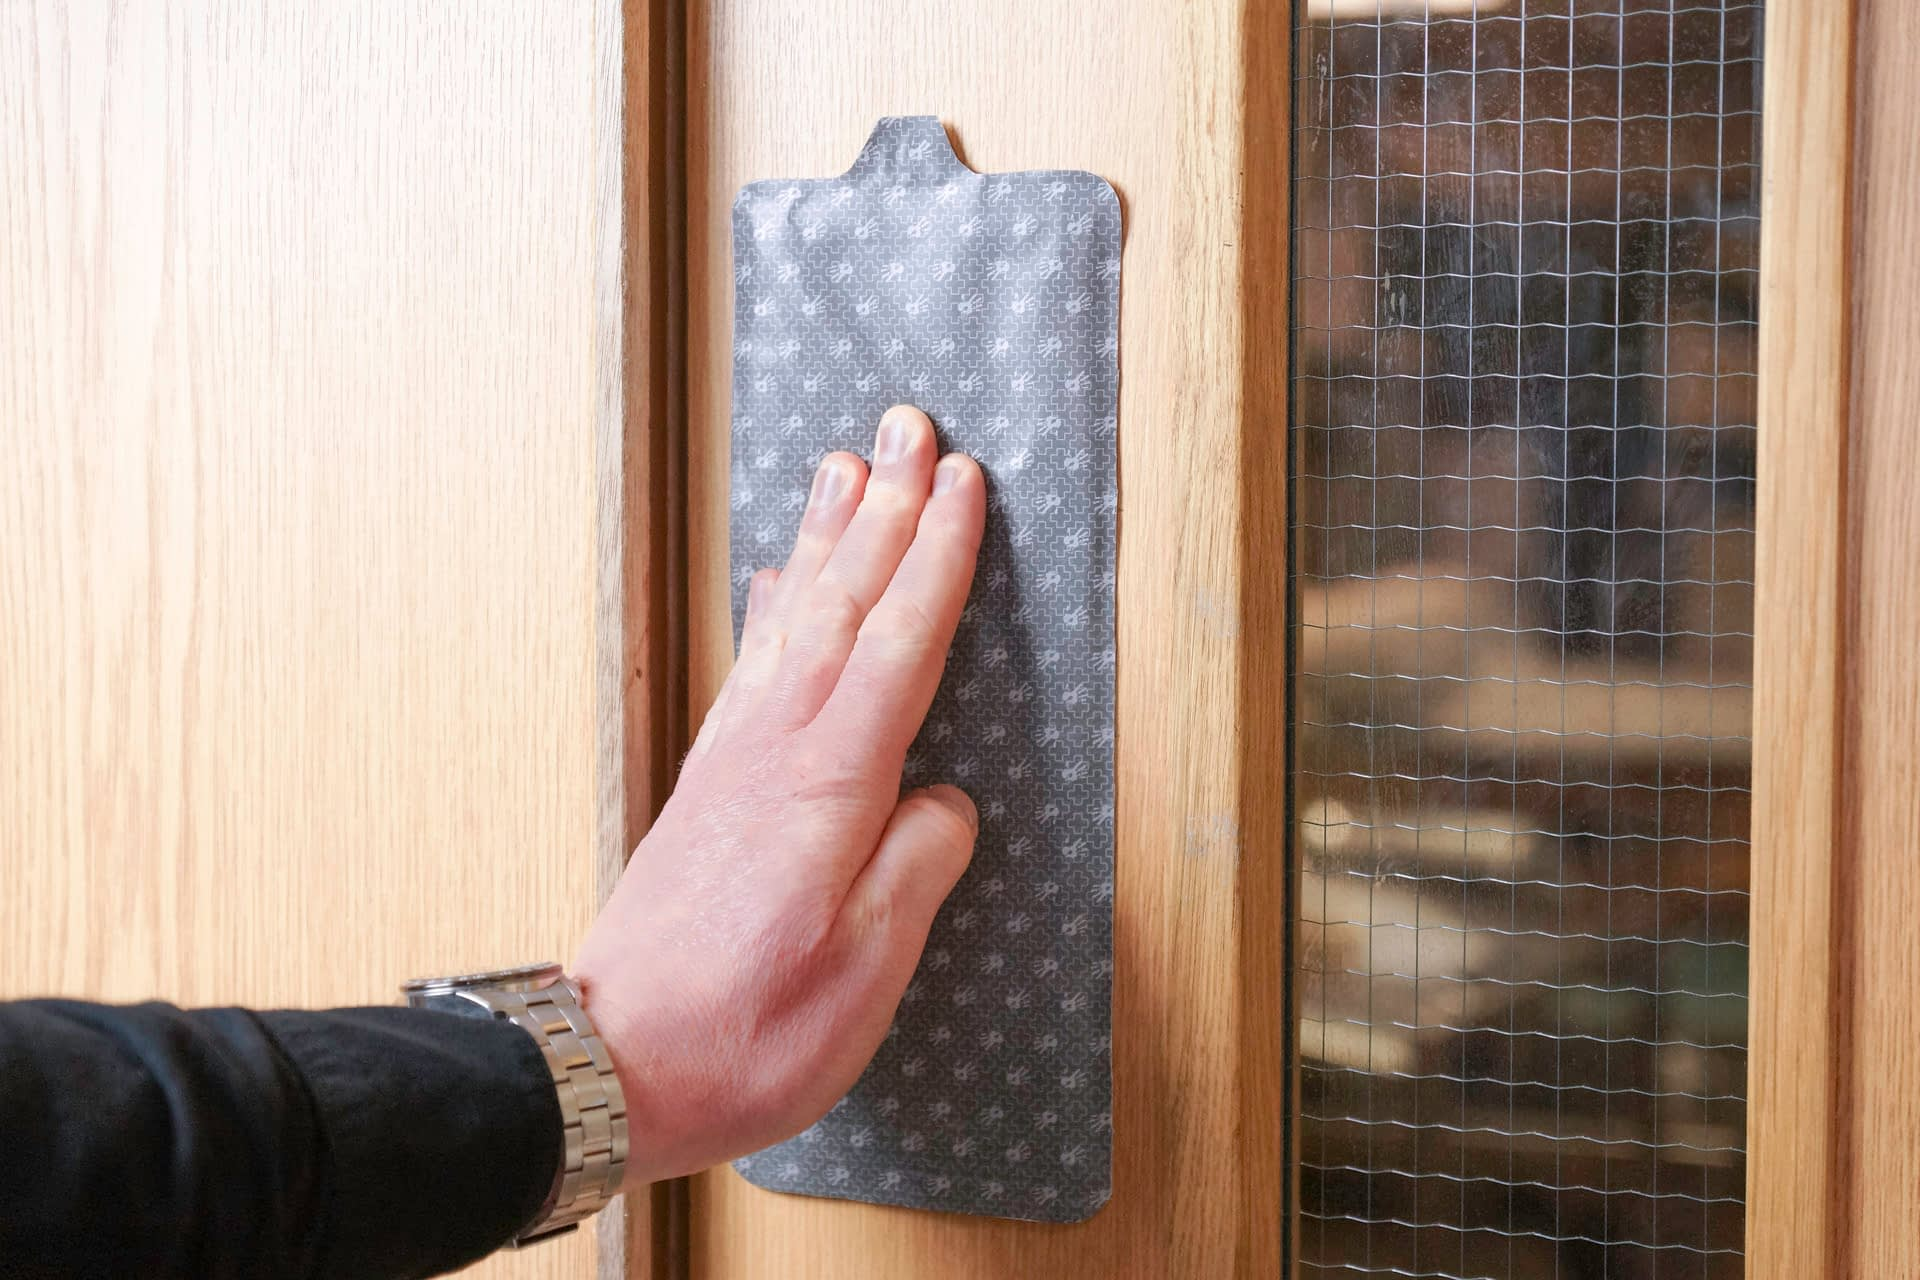 Surfaceskins: Door Hygiene, hand hygiene, hygienic surface, touch, hold, antibacterial, alcohol gel, self-disinfecting,  pull handle , Stick + Protect, stick and protect